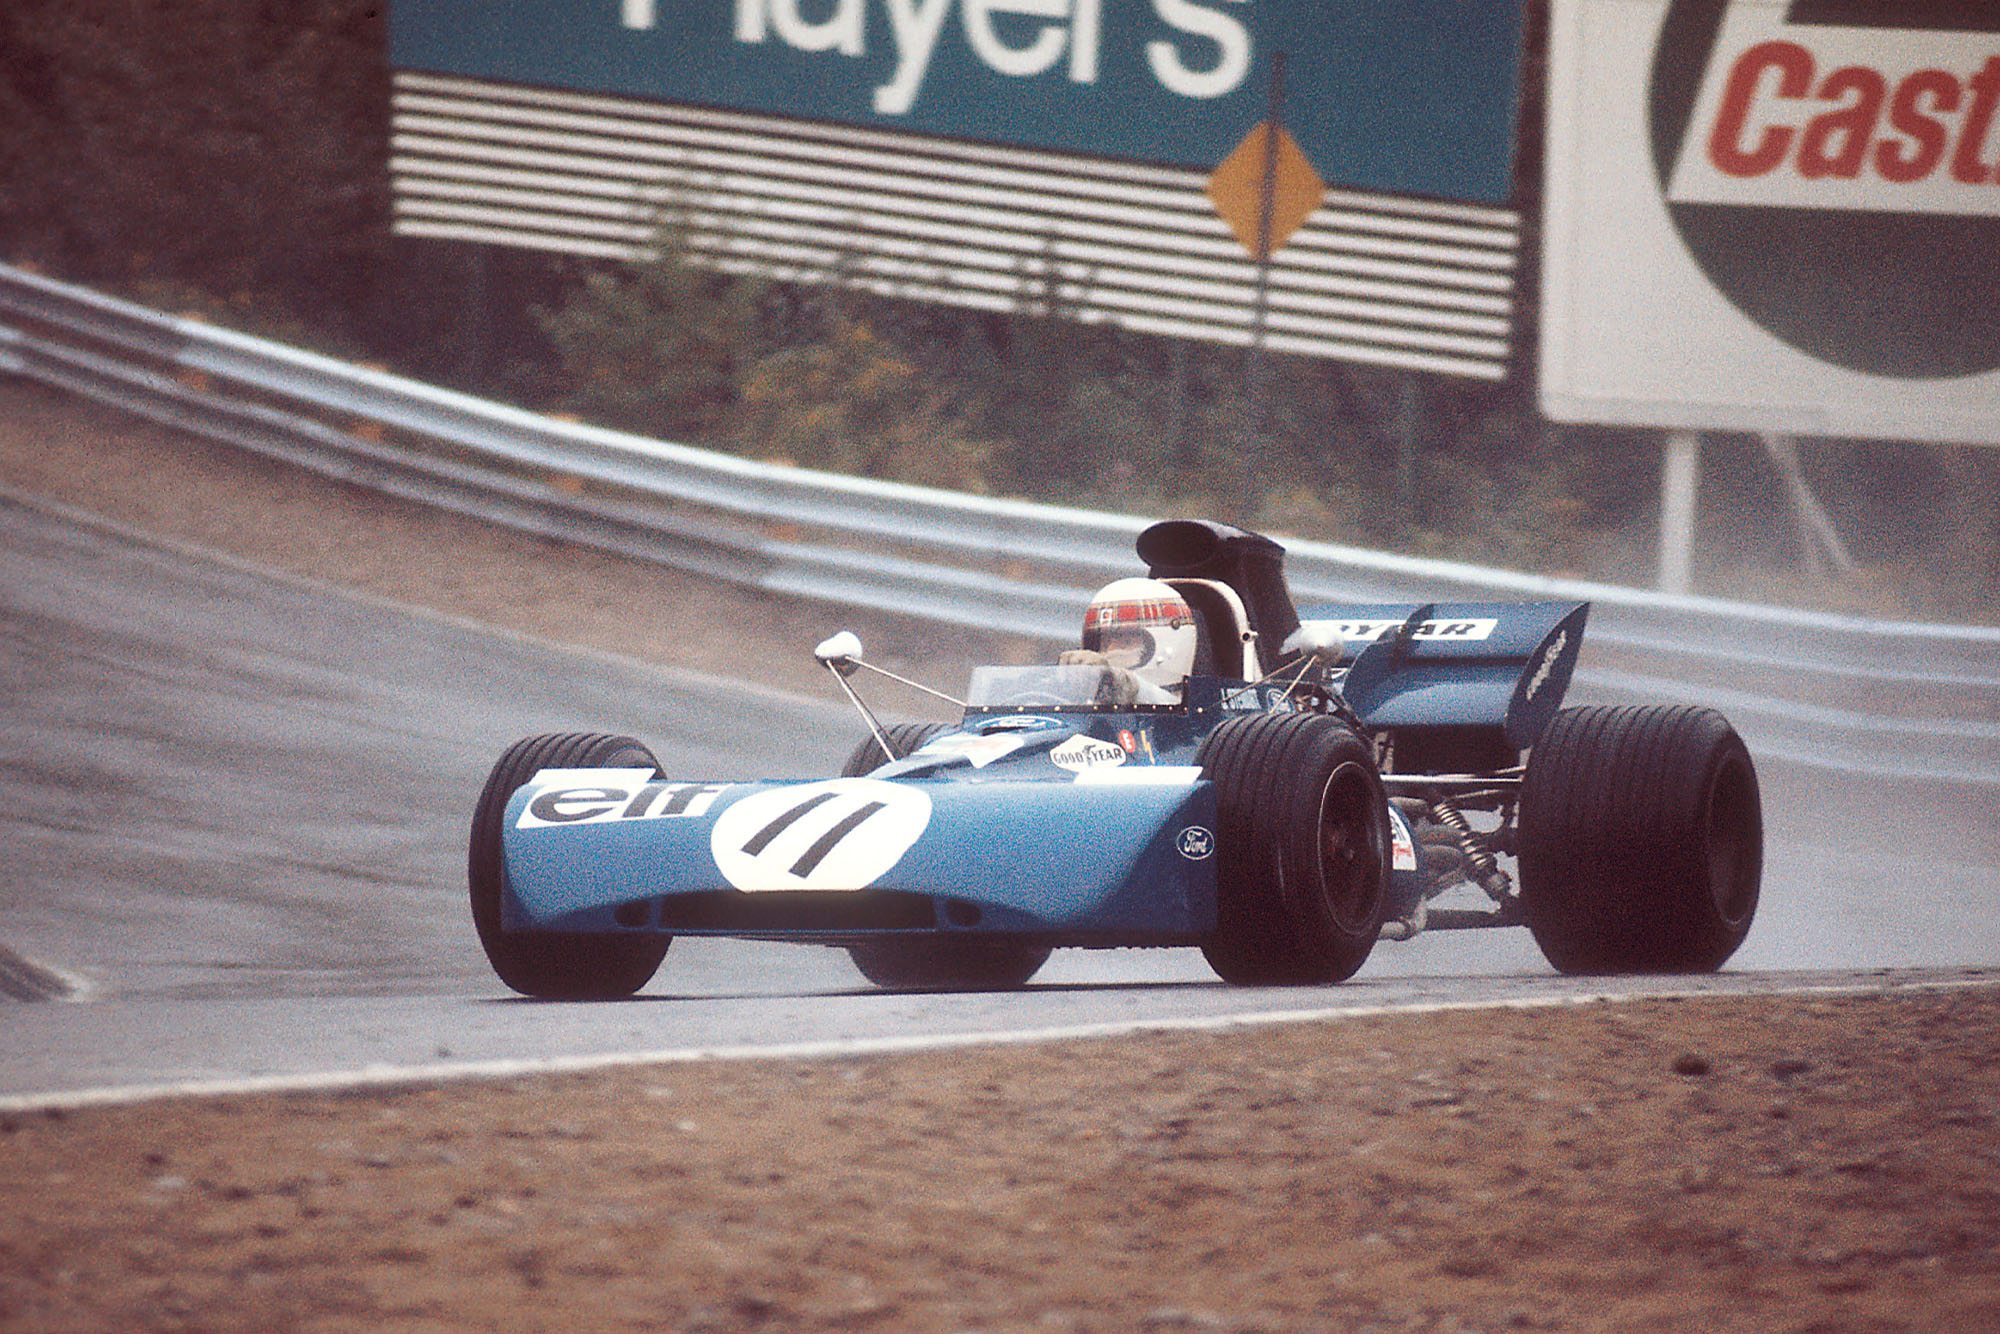 Jackie Stewart driving for Tyrrell at the 1971 Canadian Grand Prix.